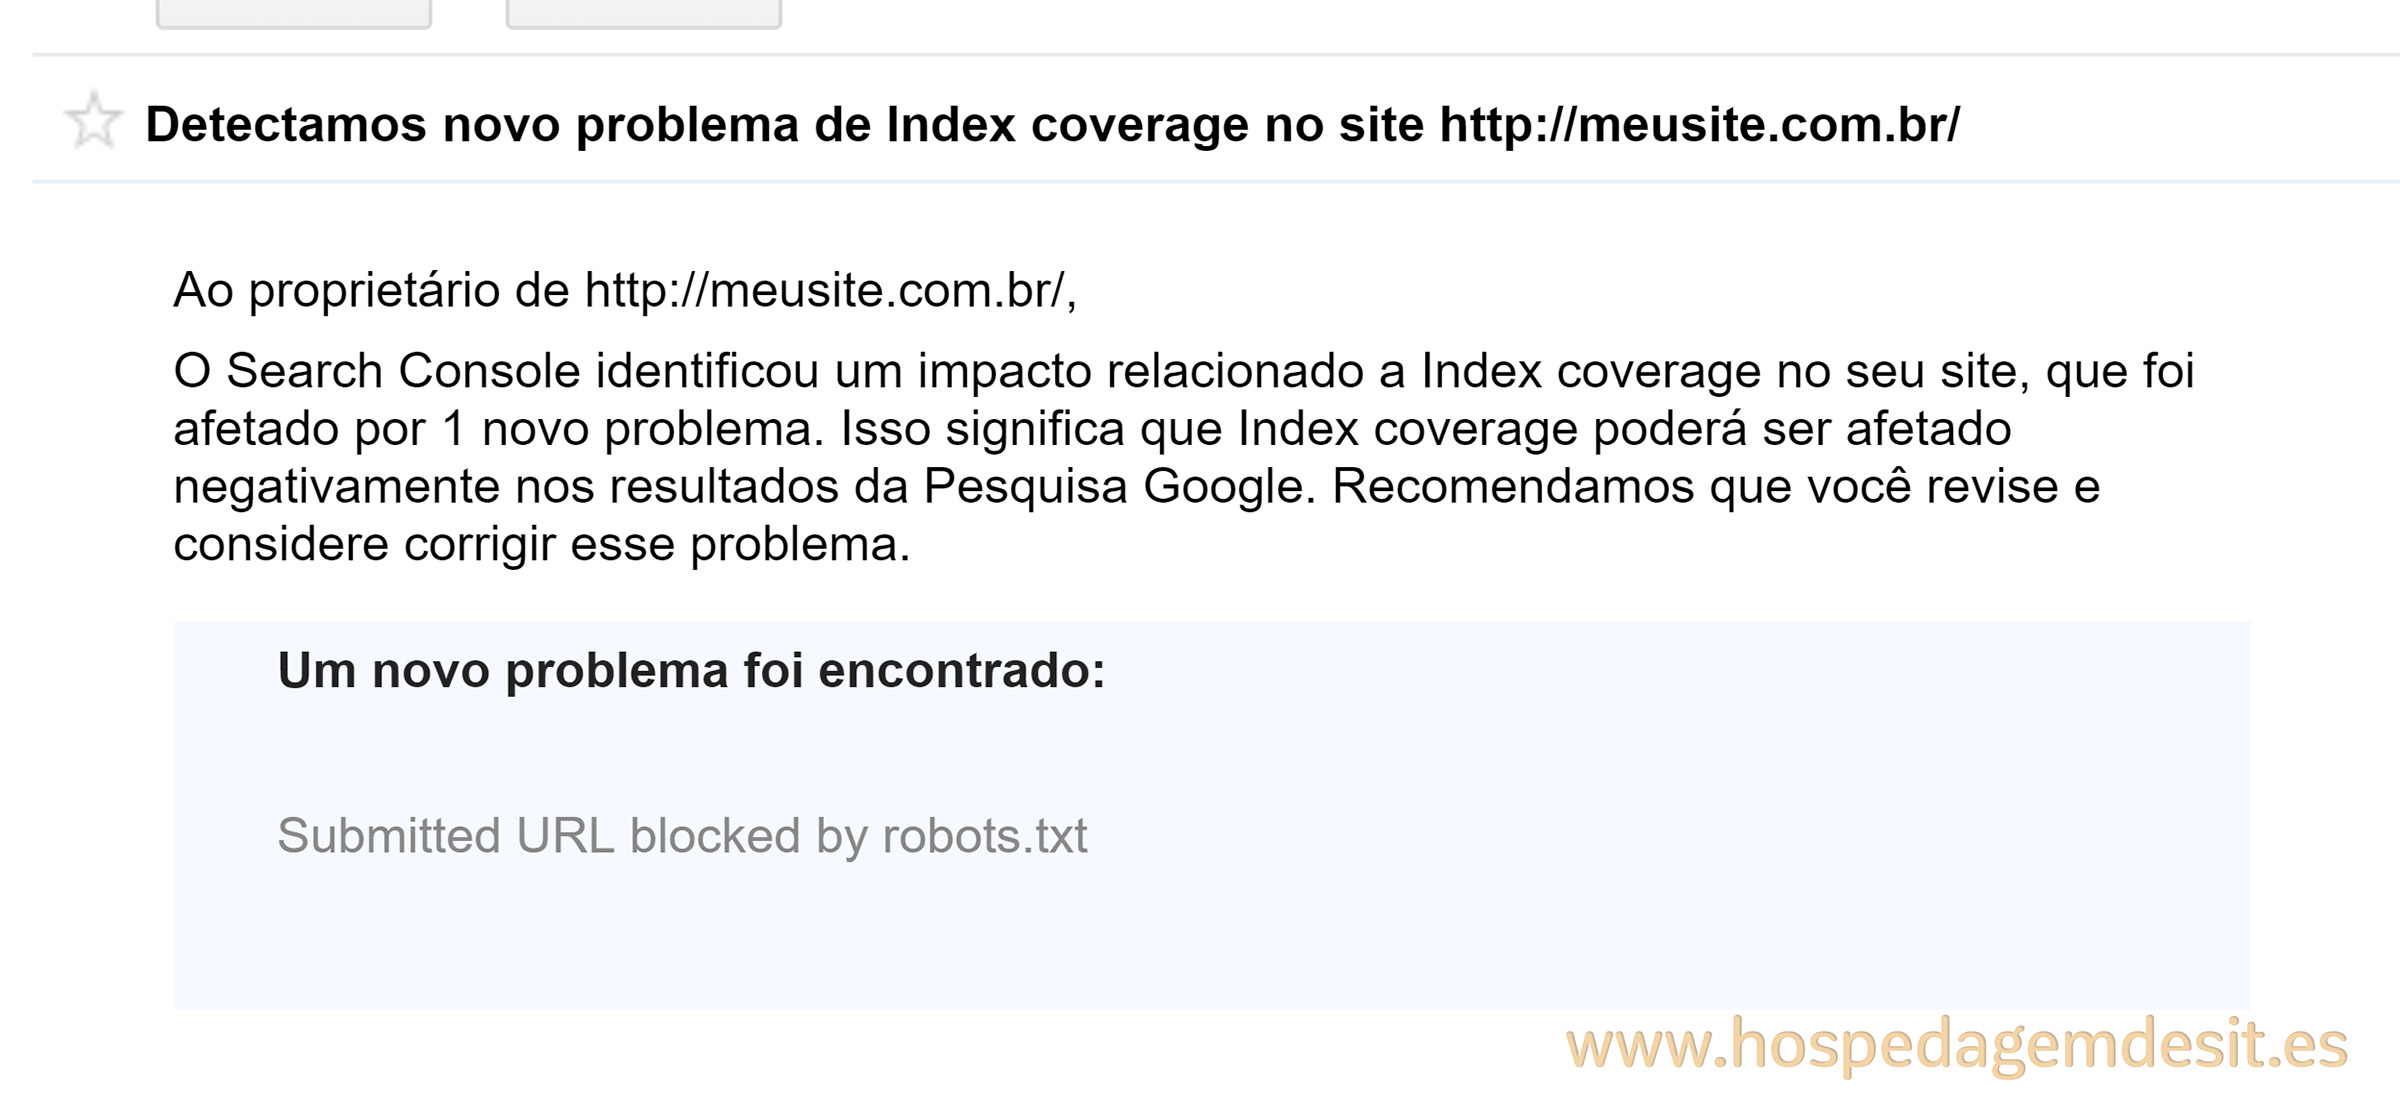 erro de index coverage url indexada bloqueada pelo robots.txt